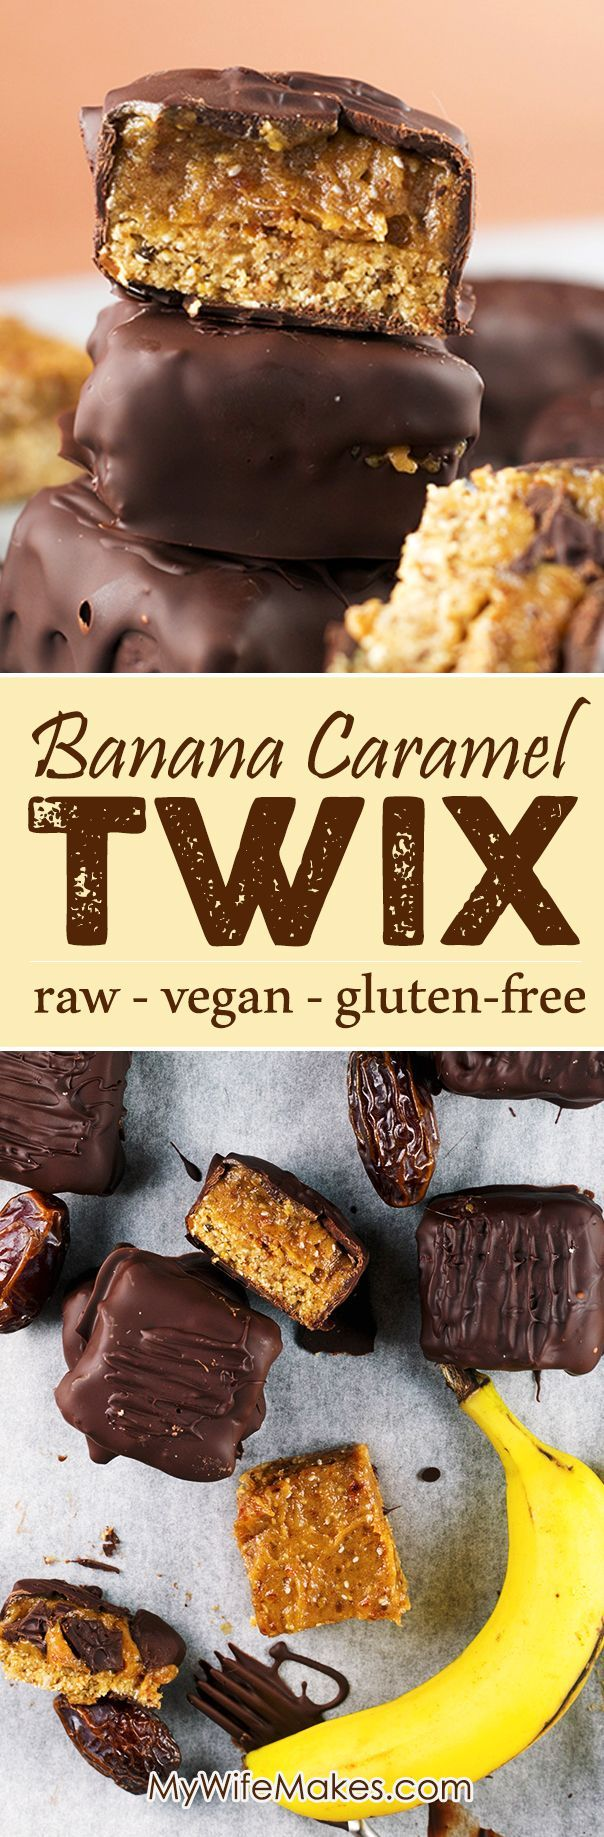 Homemade Raw Vegan Twix Bars with Banana Date Caramel. Crisp chocolate coating with a sweet and gooey Banana Caramel center.